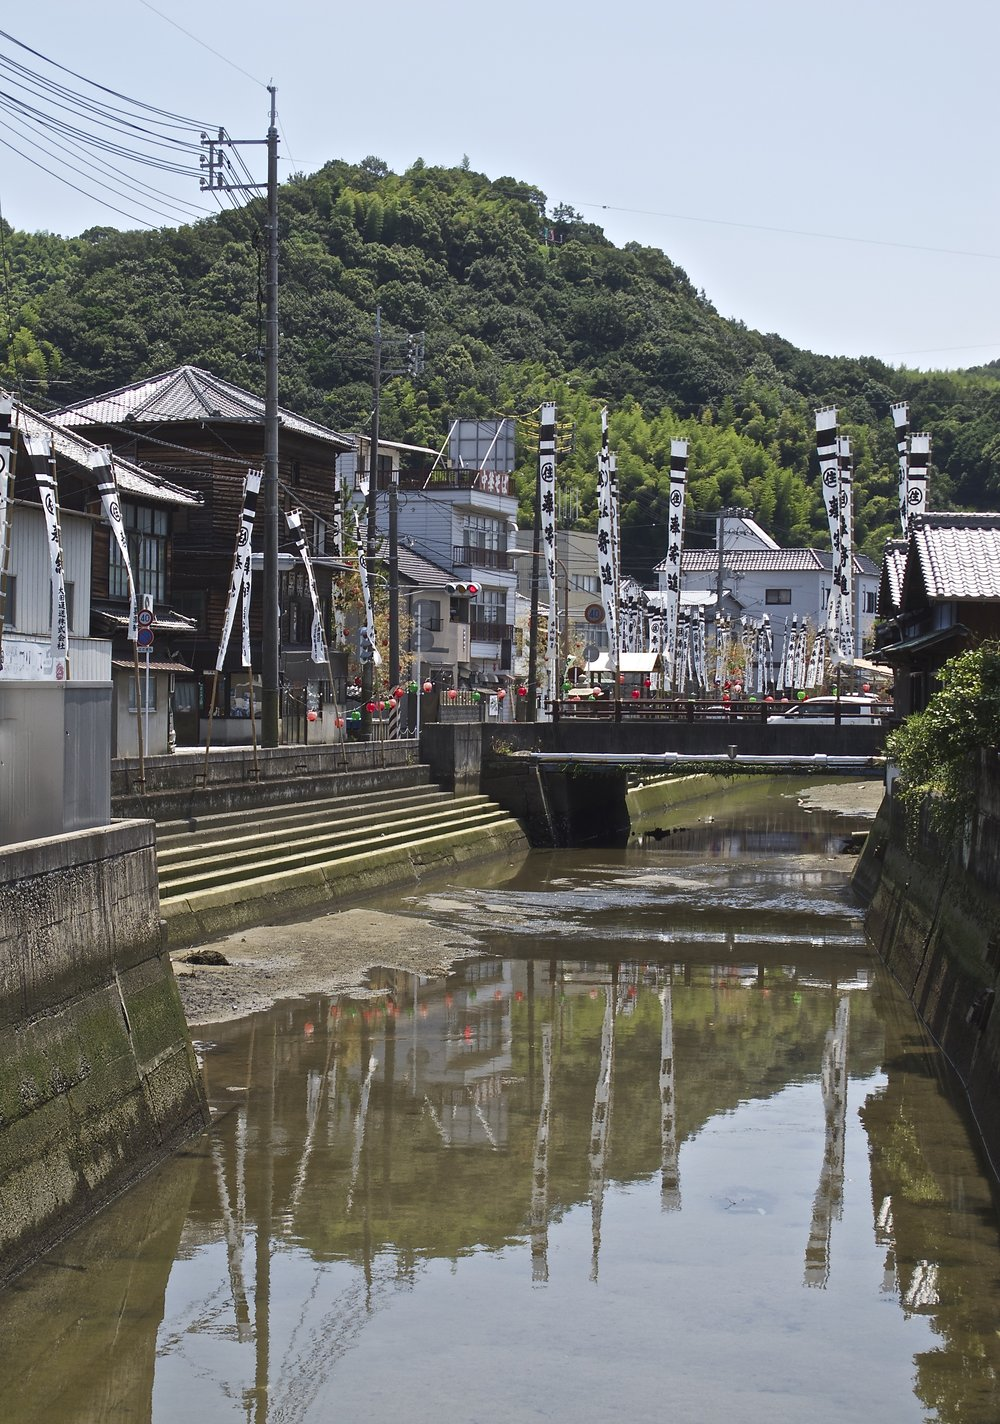 Dug in 1650 to connect the town to the sea, the Honkawa Canal is lined with large warehouse-residences where merchants lived, business was transacted, and salt was stored before being put on lighters to be taken to ships waiting in the bay.